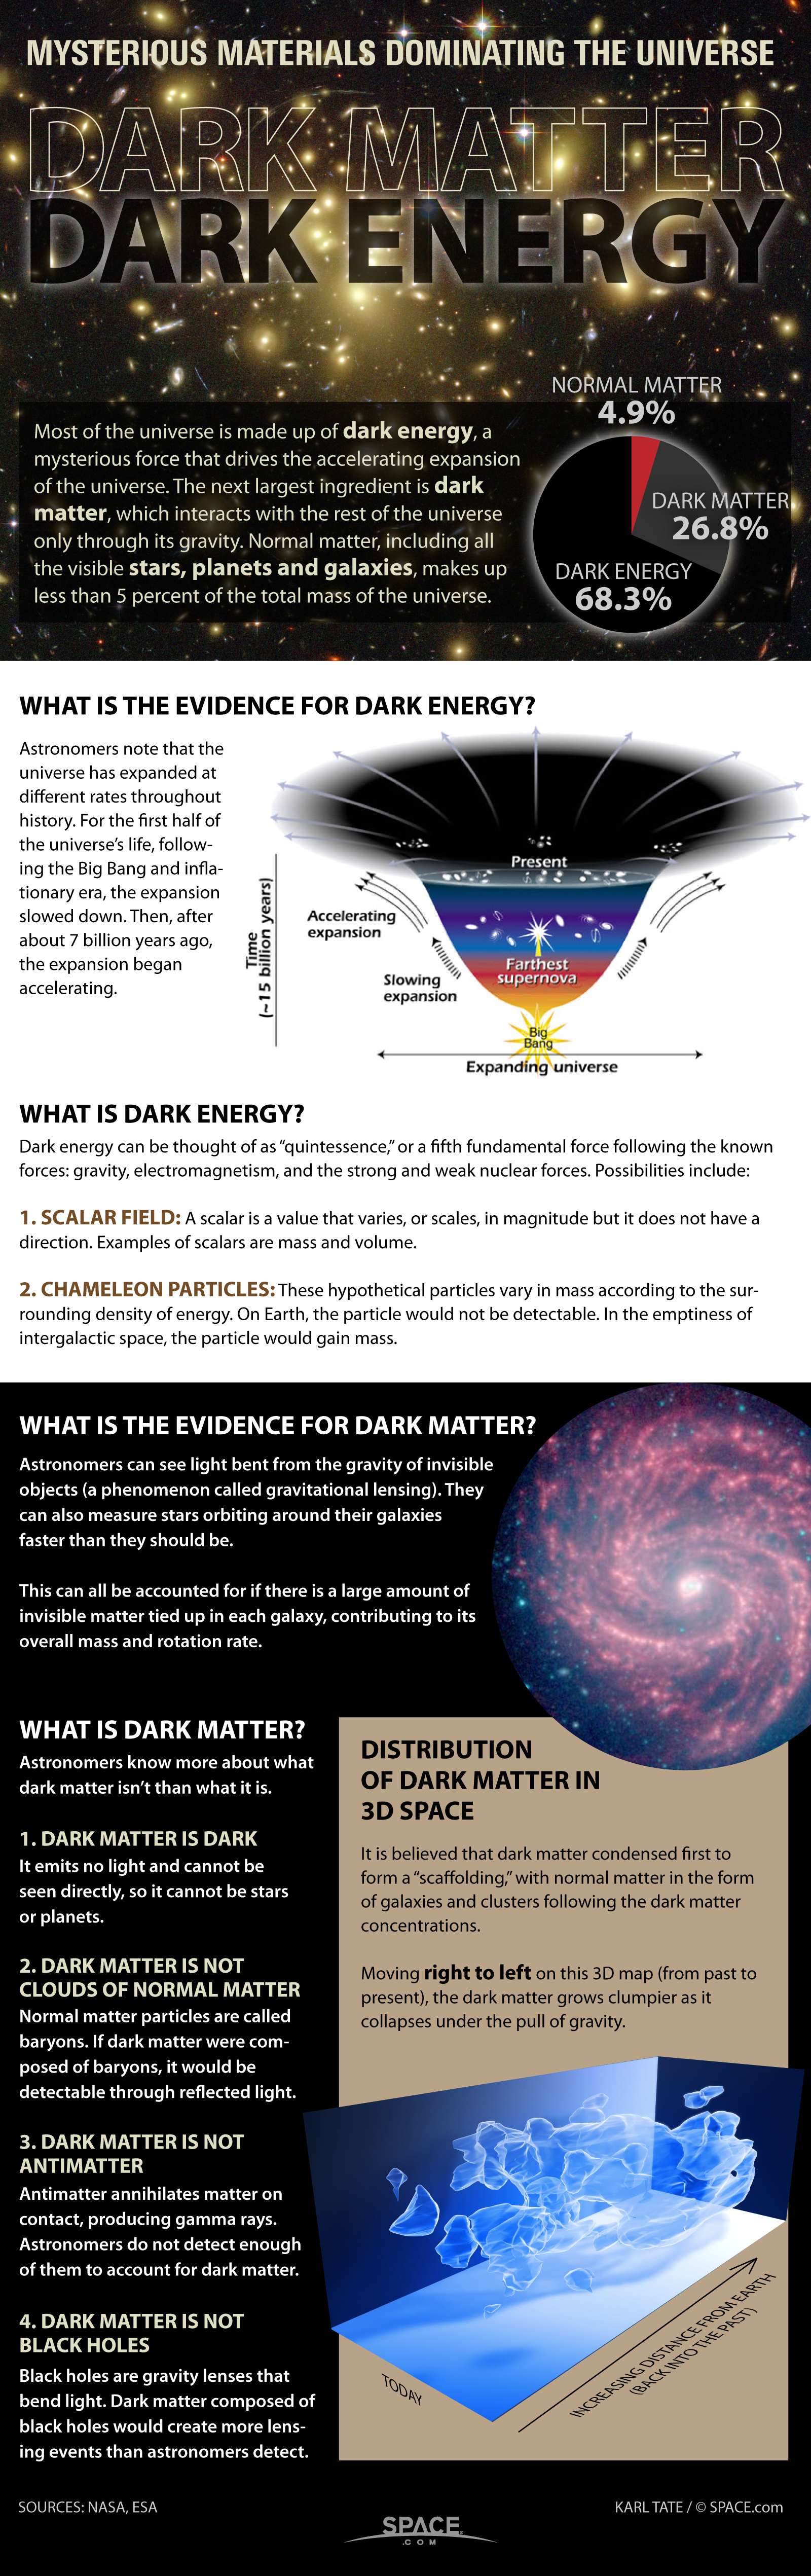 Infographic: What is known about the mysterious dark matter that fills the universe.